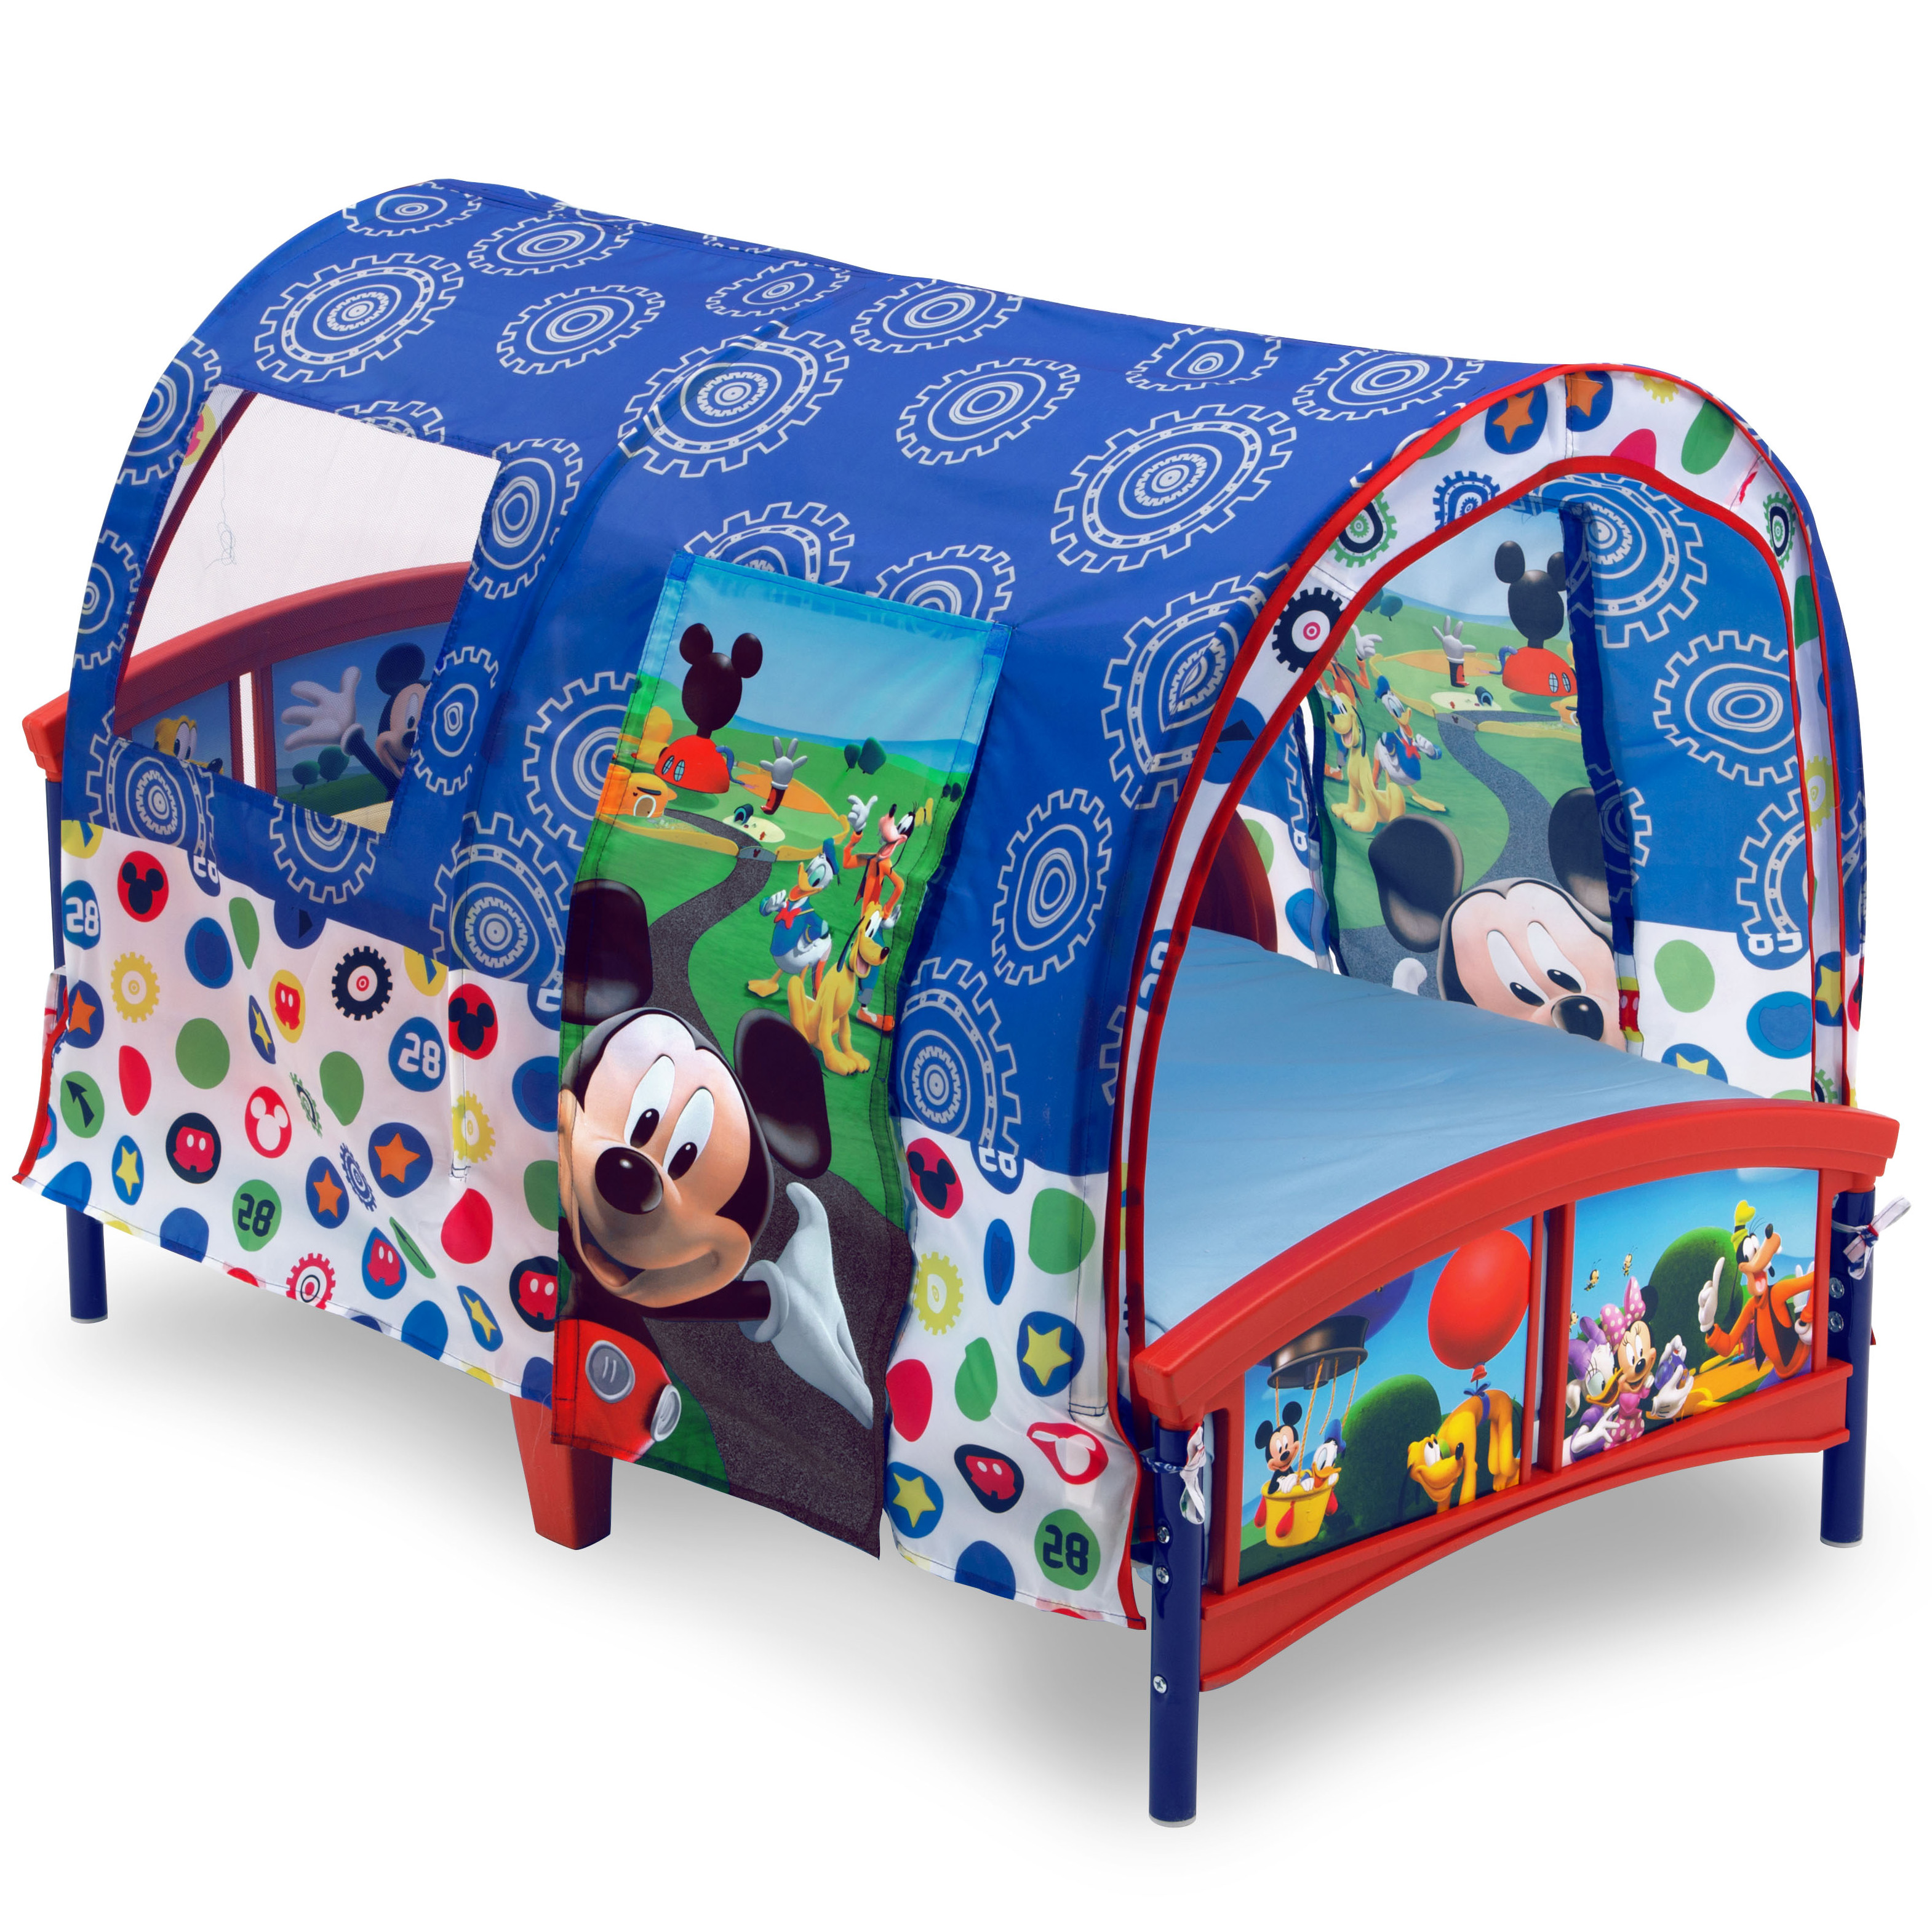 Mickey Mouse Plastic Toddler Bed with Tent  sc 1 st  Walmart & Mickey Mouse Plastic Toddler Bed with Tent - Walmart.com